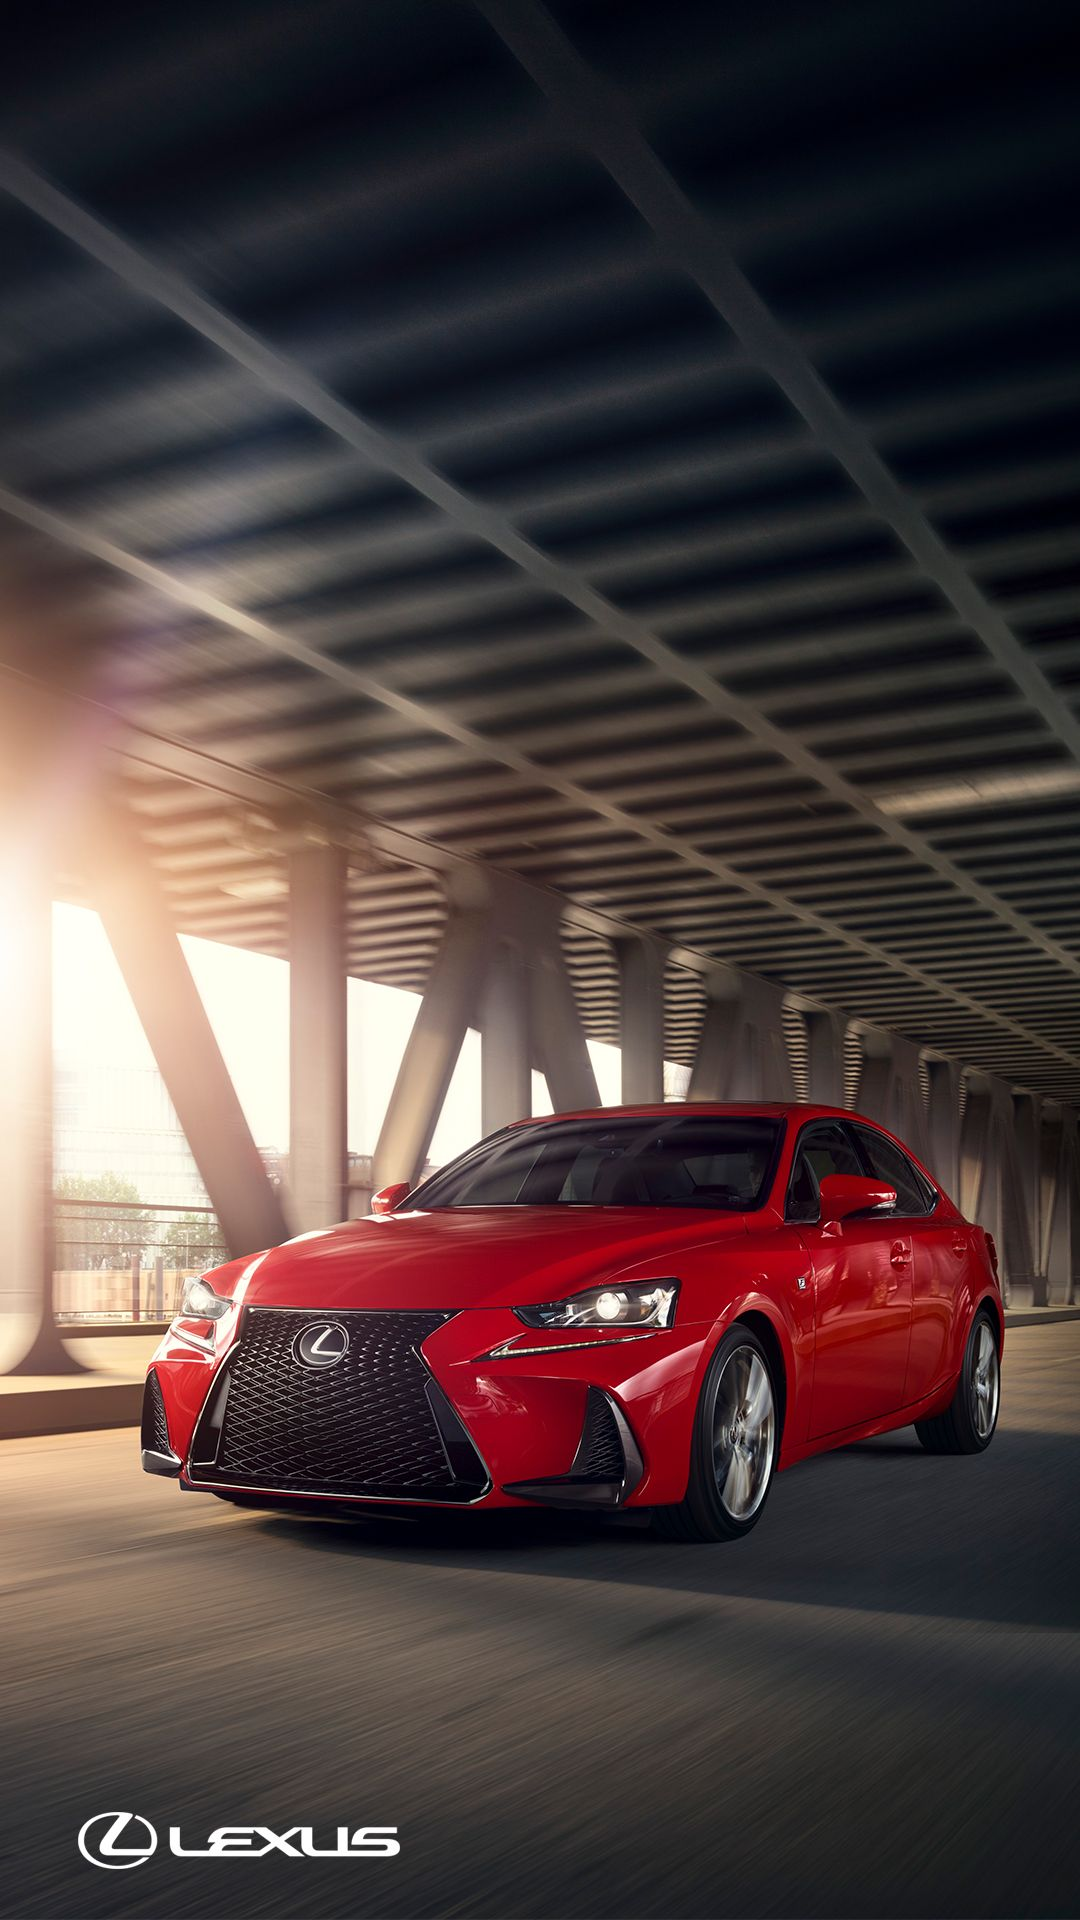 High Quality Aggressive Styling, Dramatic Design And Dynamic F SPORT Tuned Suspension.  Perfectly Untamed For